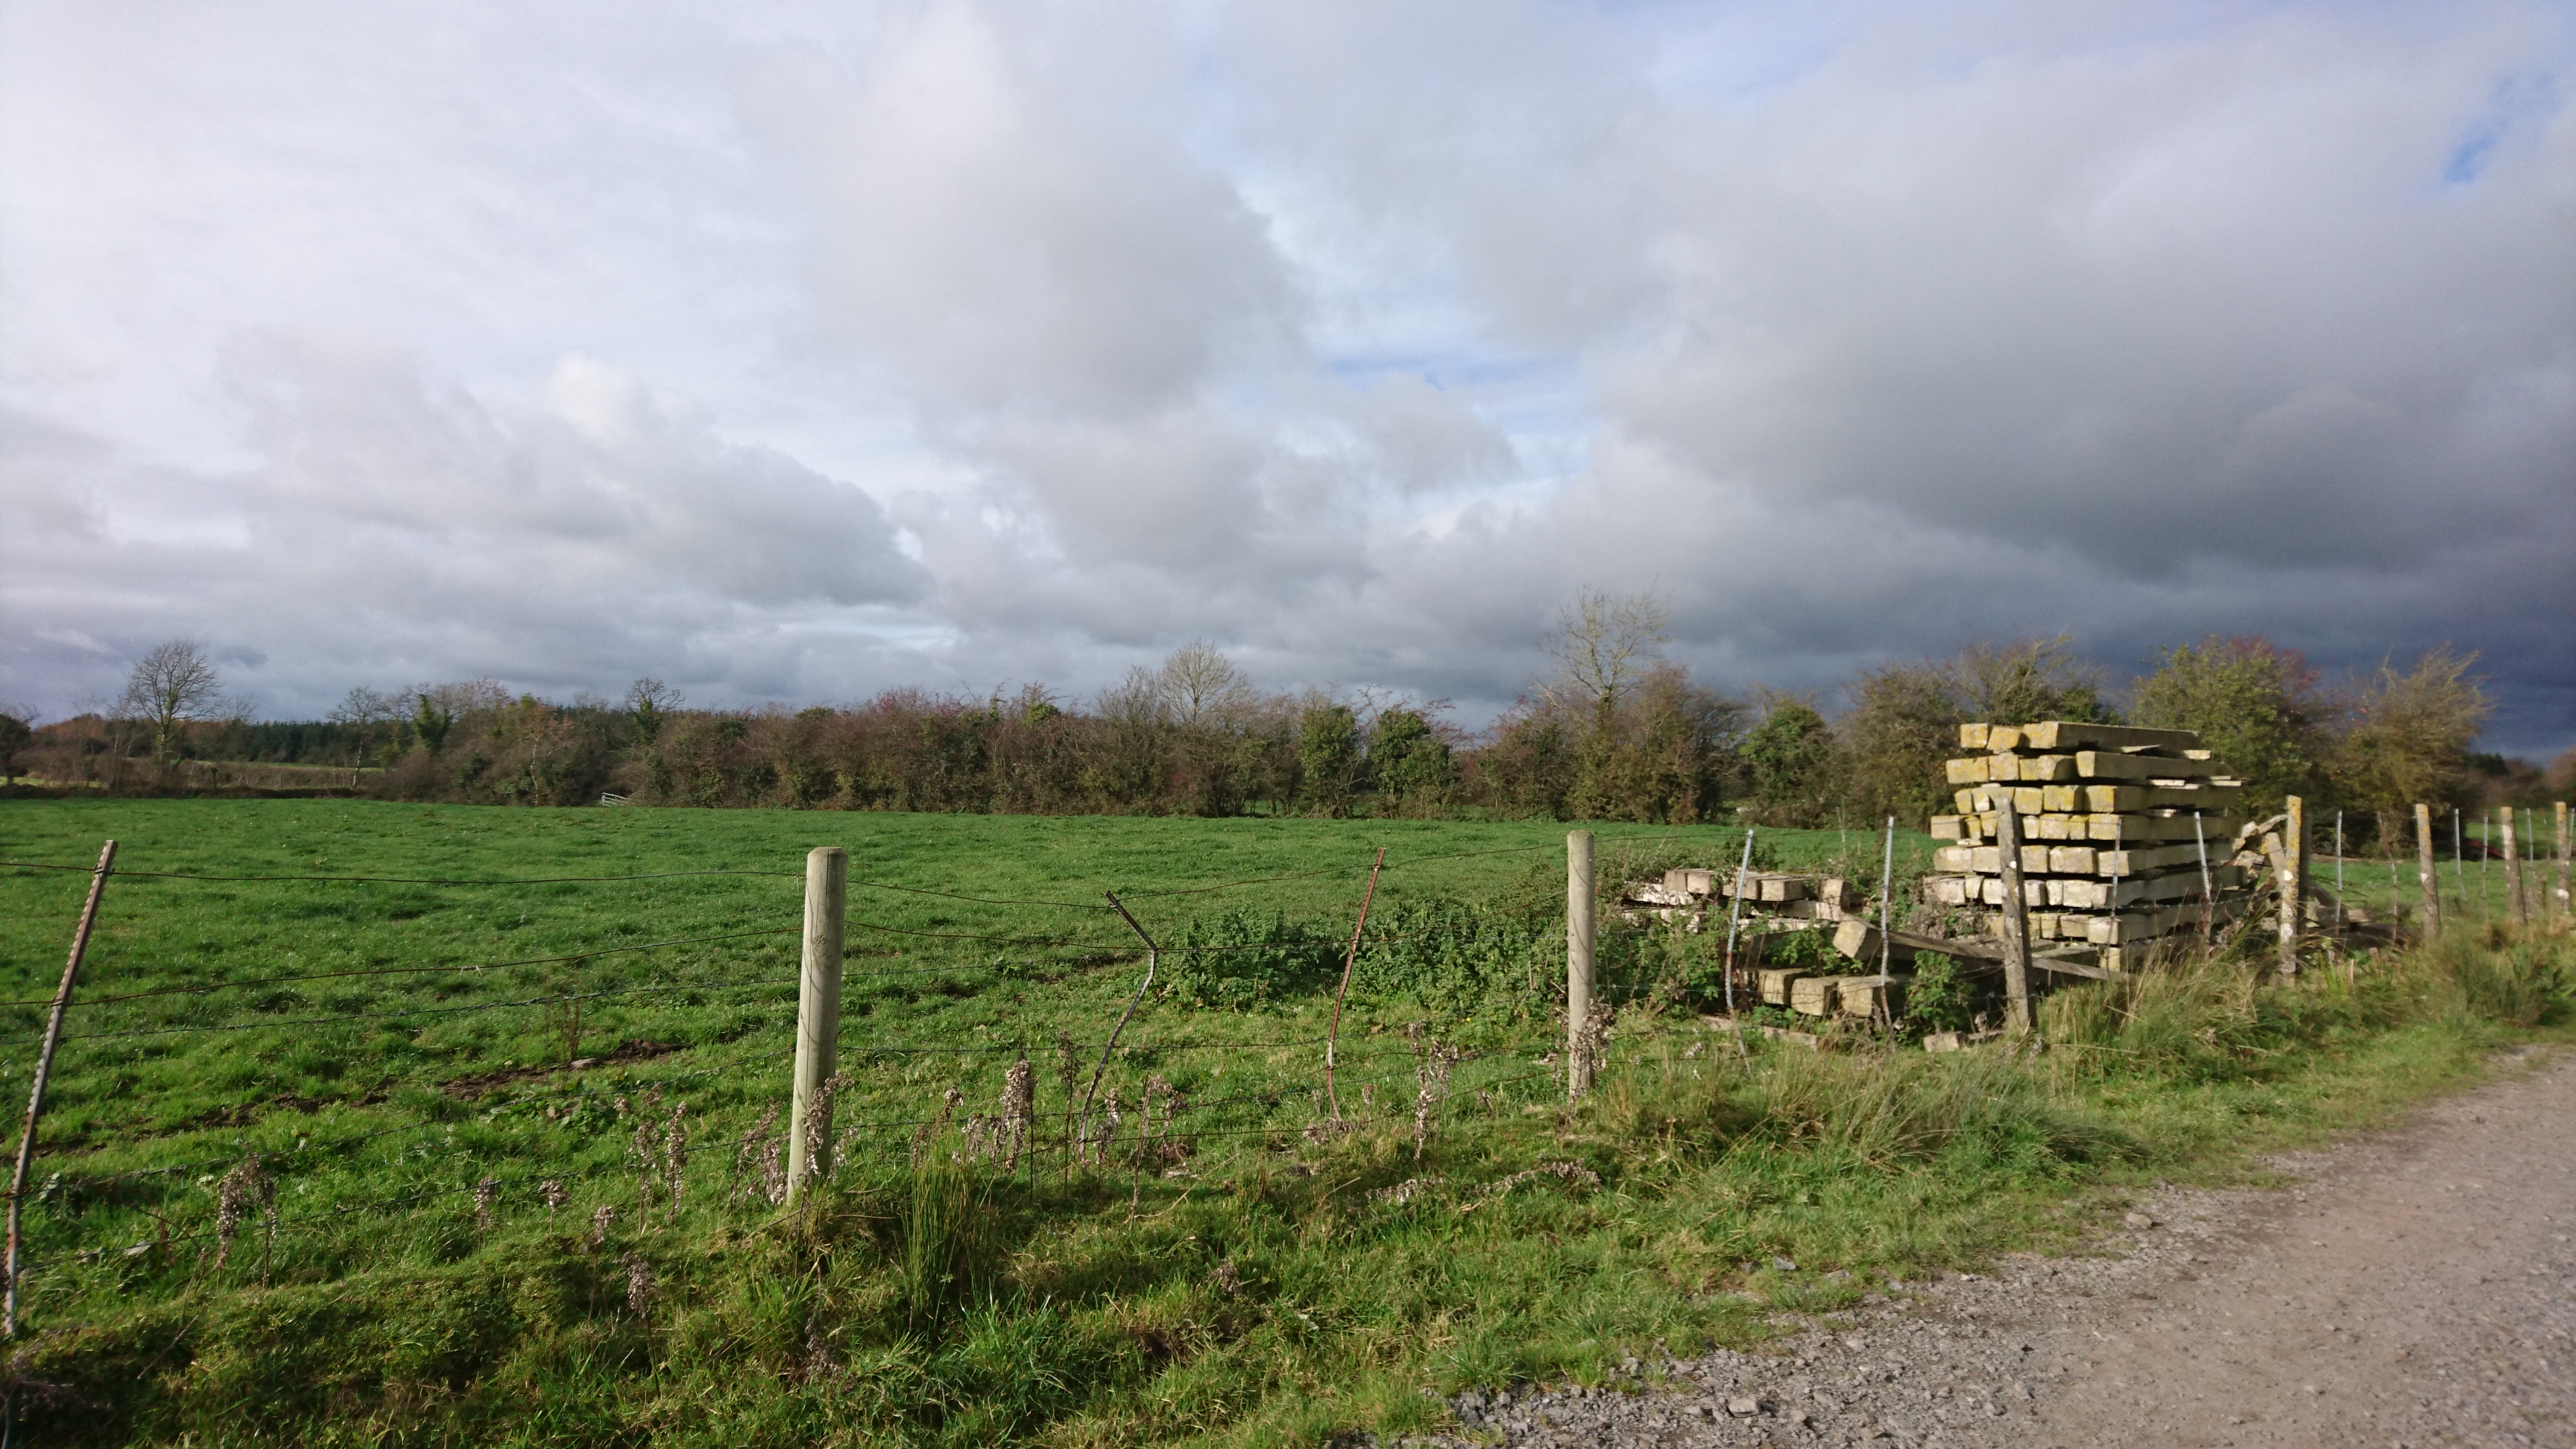 Group Eleven's Ballinalack project sits amid farm land in the Irish countryside. Photo by Richard Quarisa.